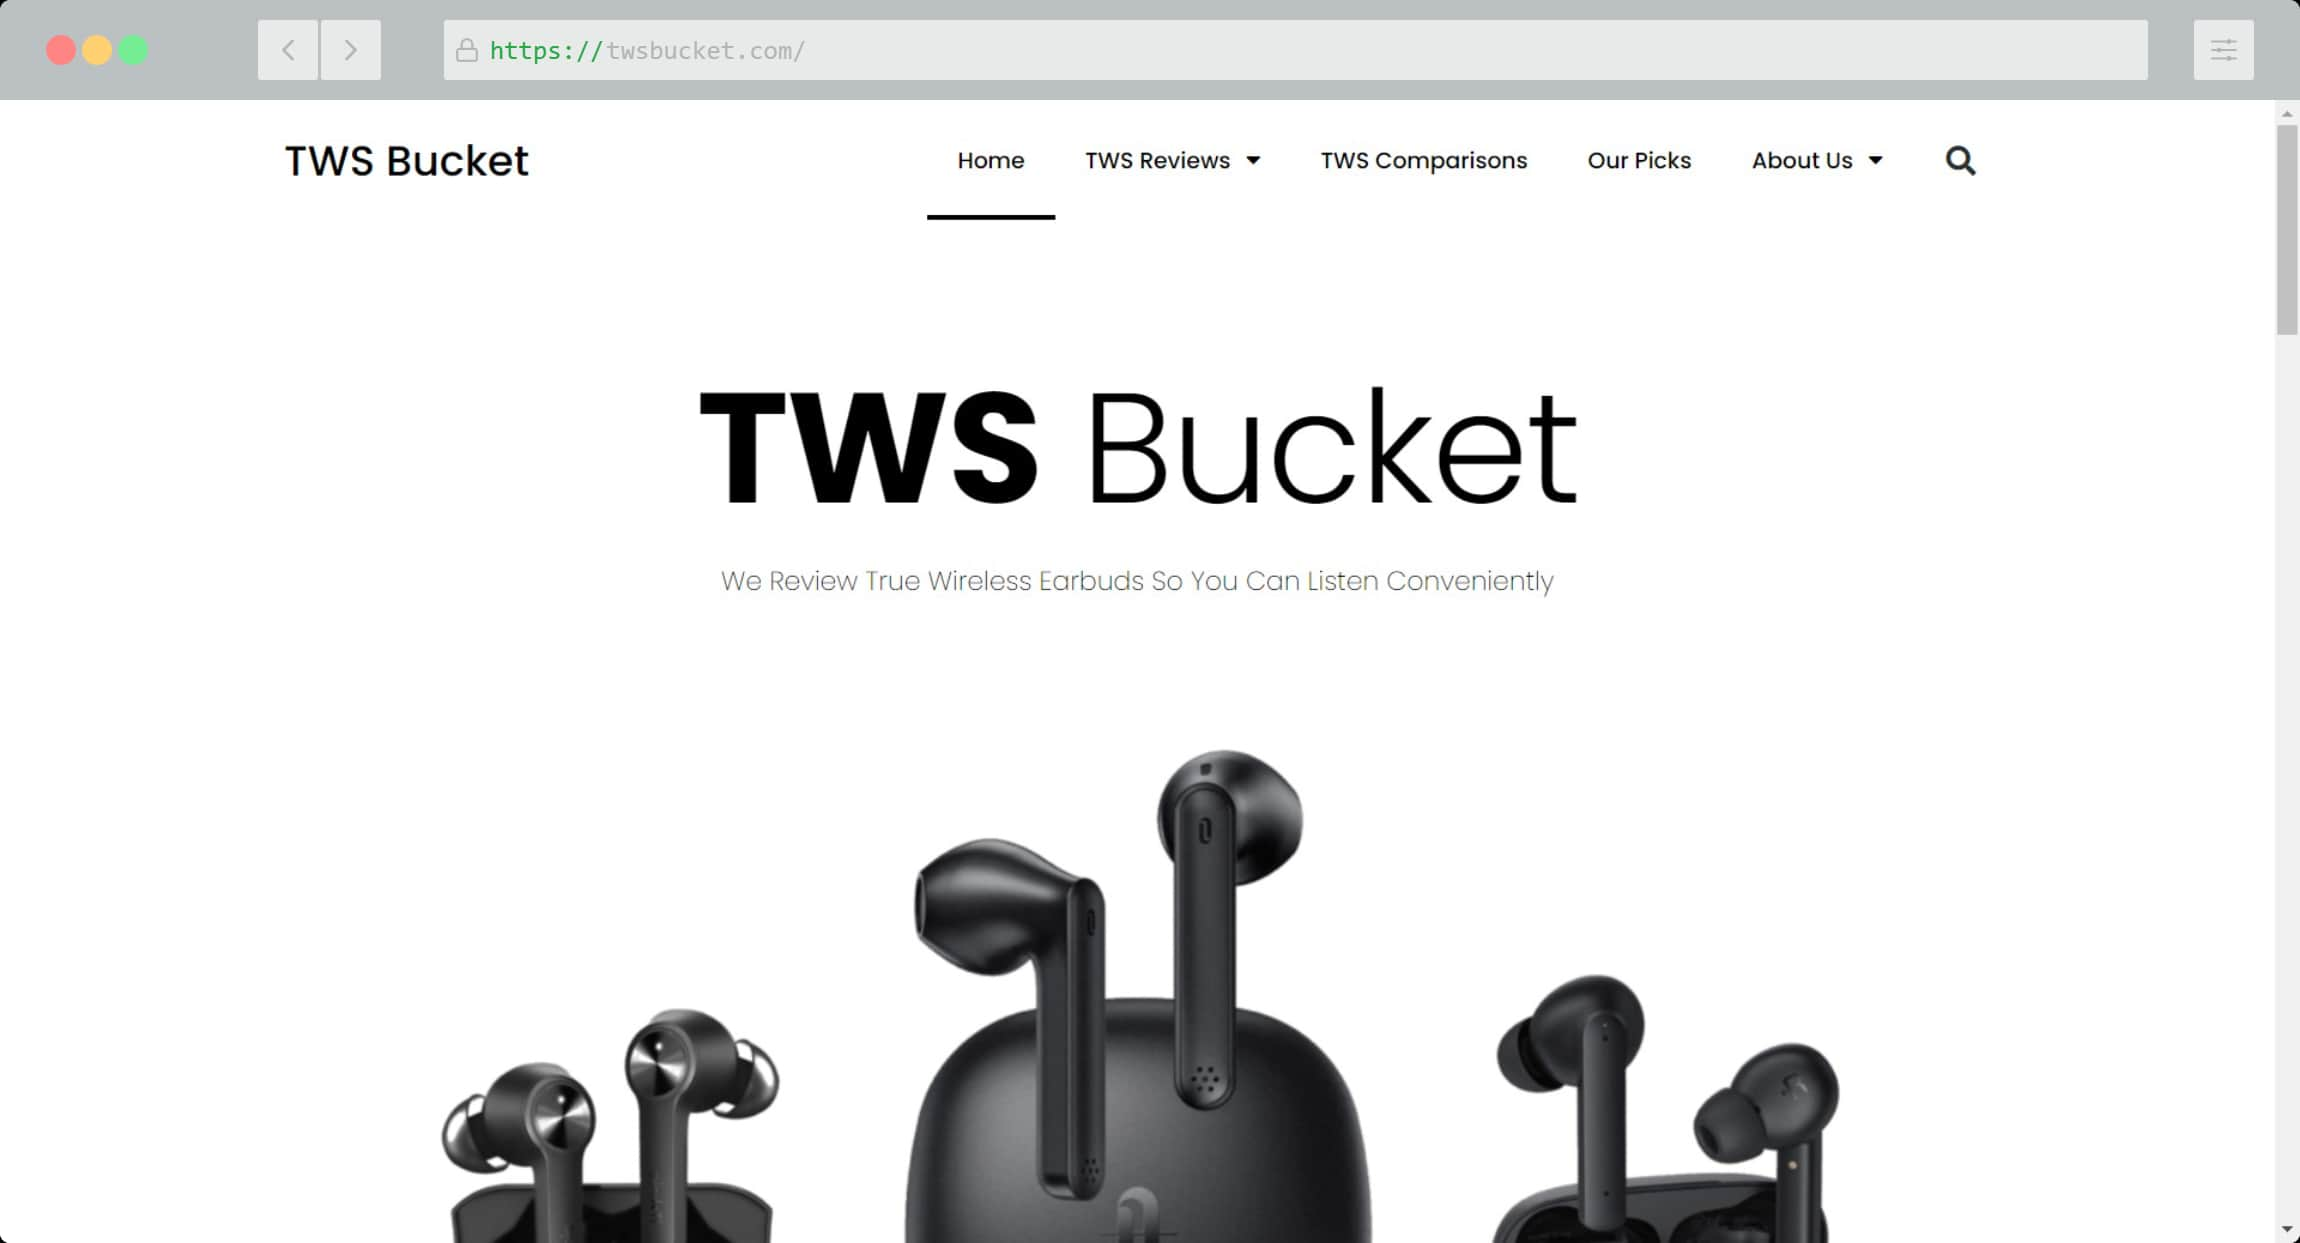 TWS Bucket Website